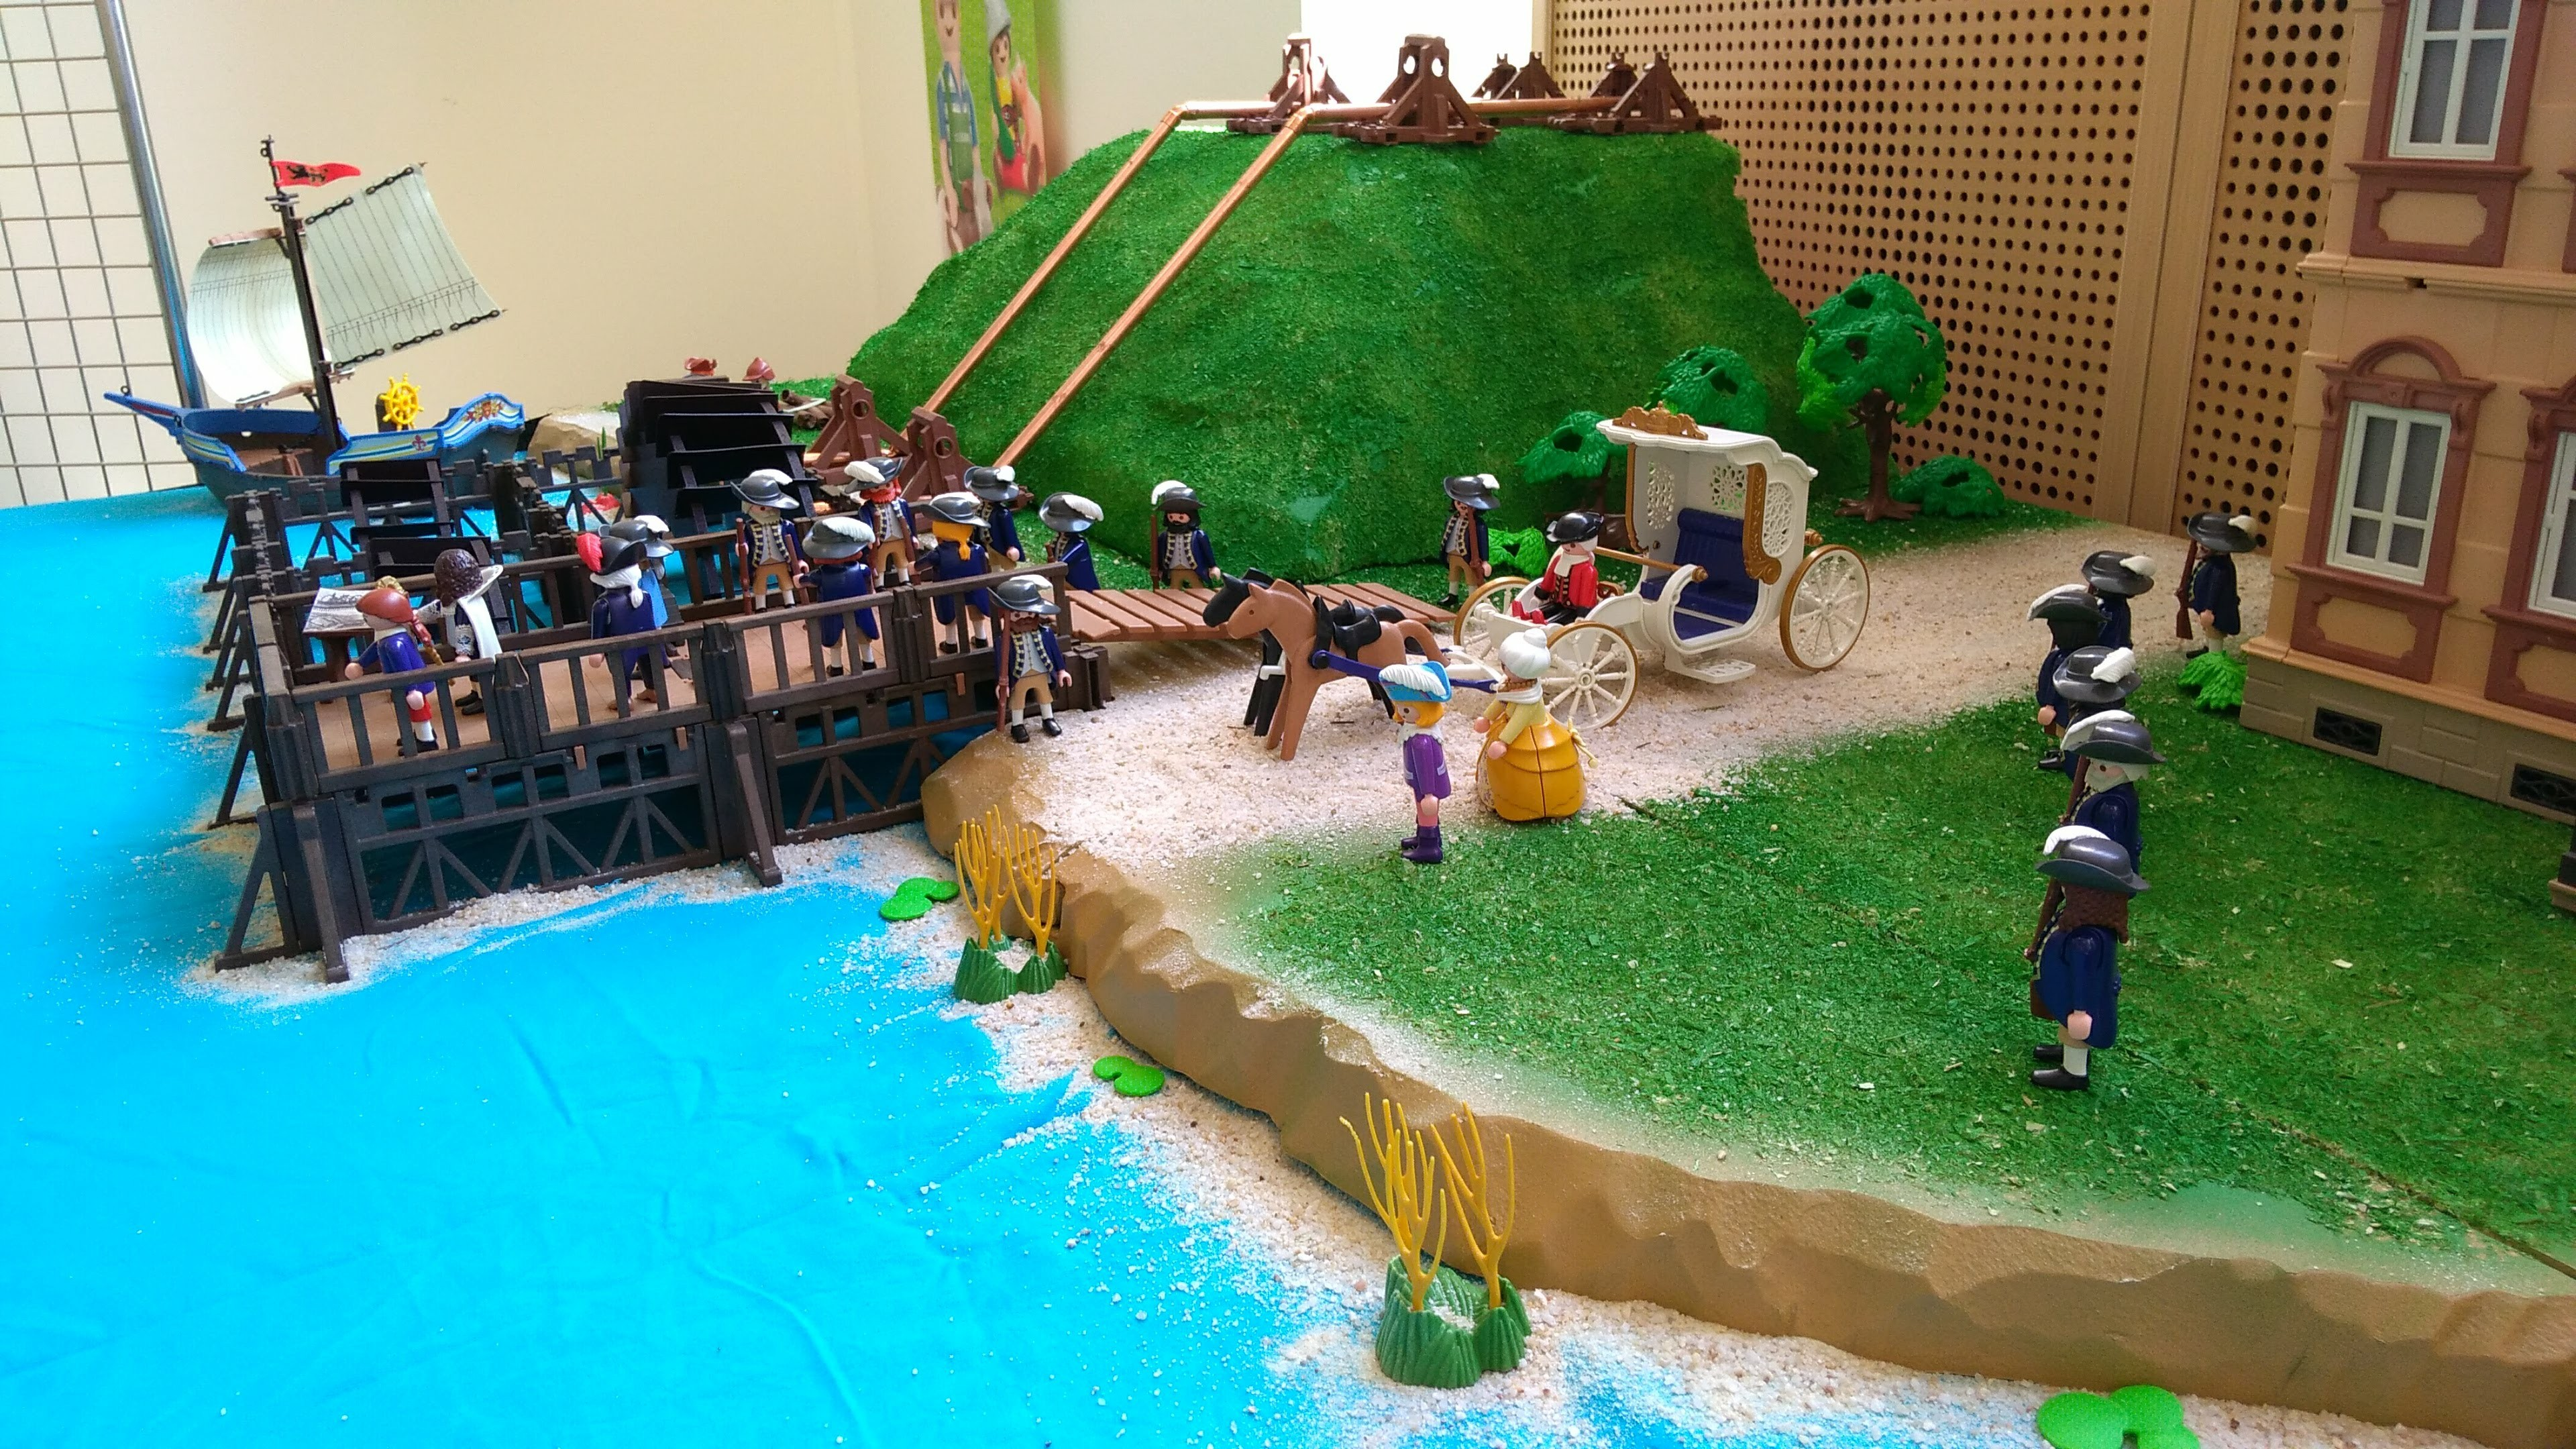 La Machine de Marly imaginée par le roi Louis XIV en Playmobil